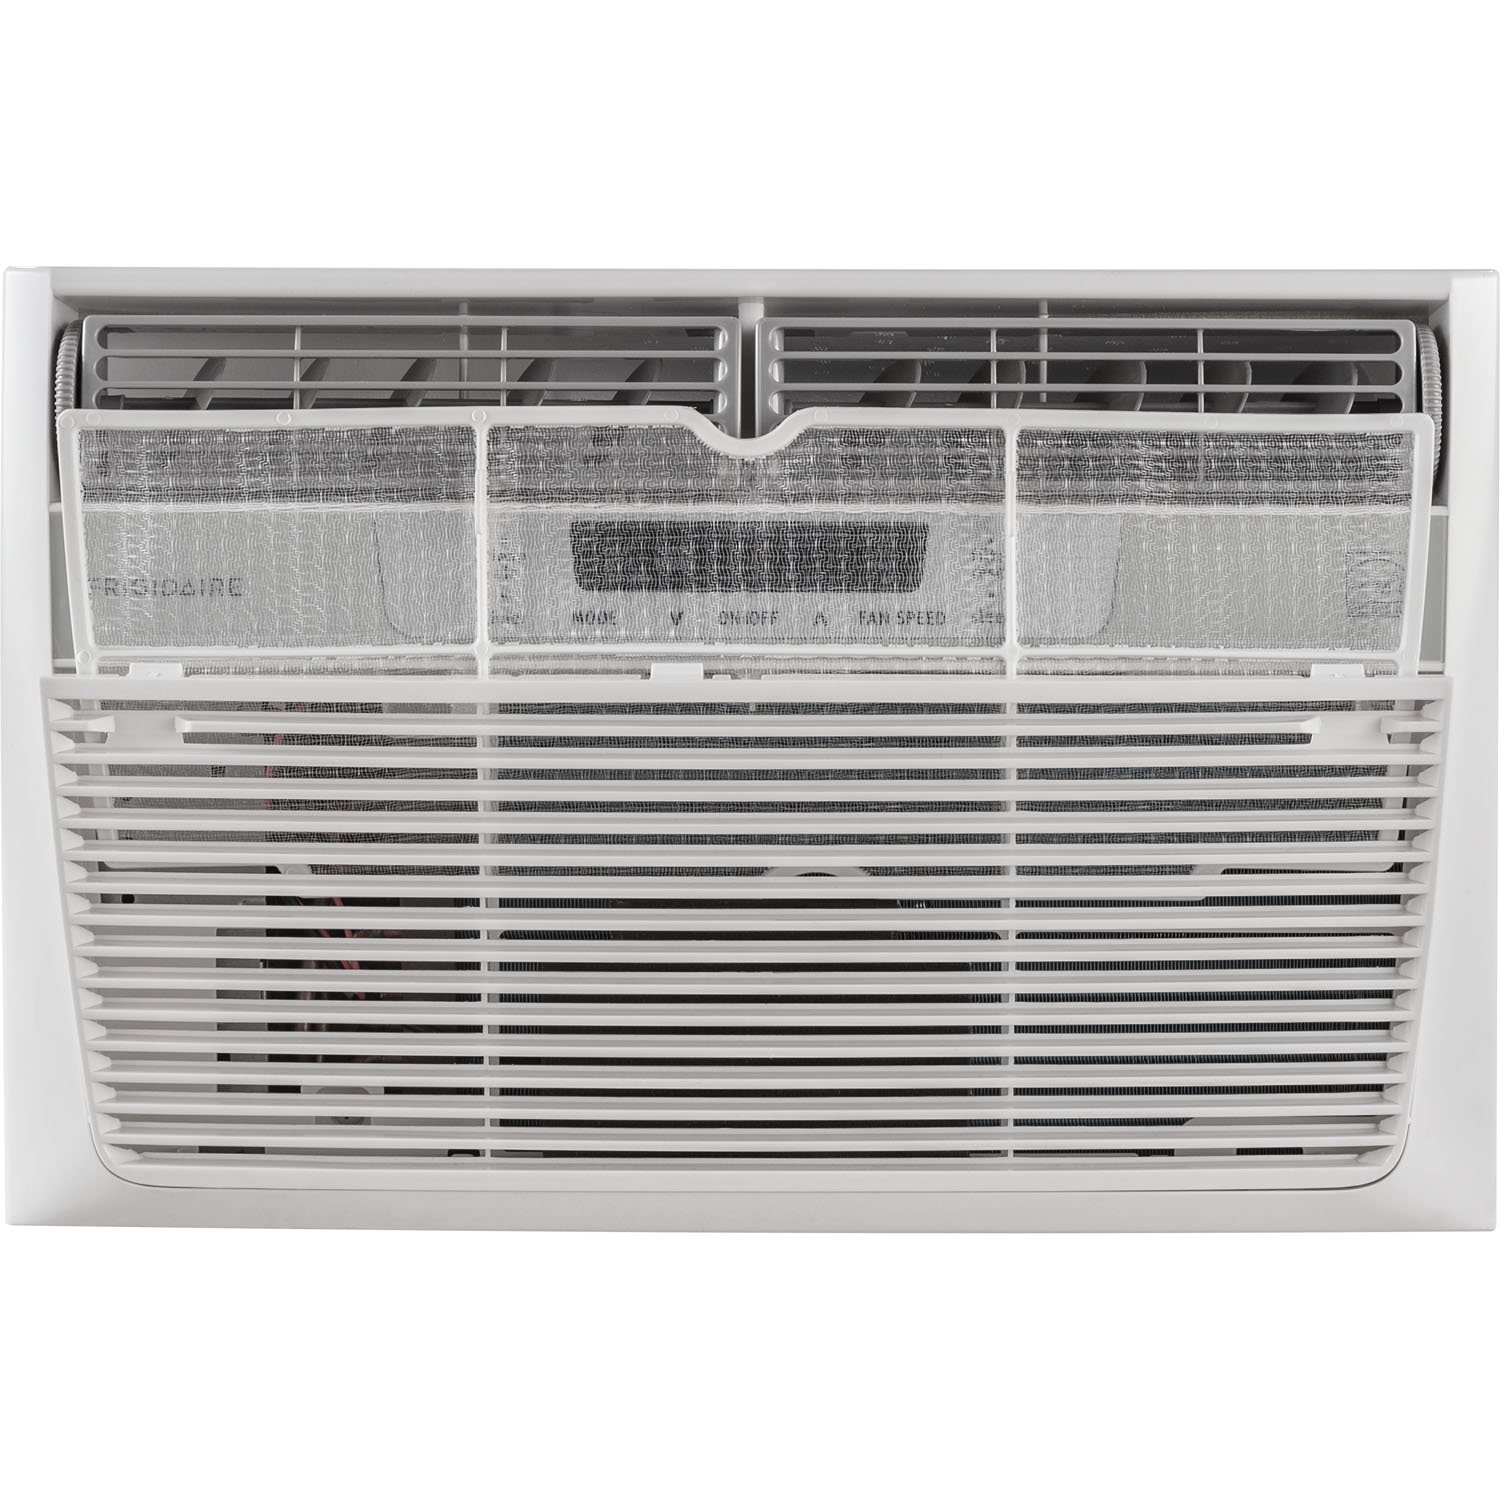 compact window air conditioner attractive window amazoncom frigidaire ffre0633s1 6000 btu 115v windowmounted minicompact air conditioner with fullfunction remote control home kitchen mini